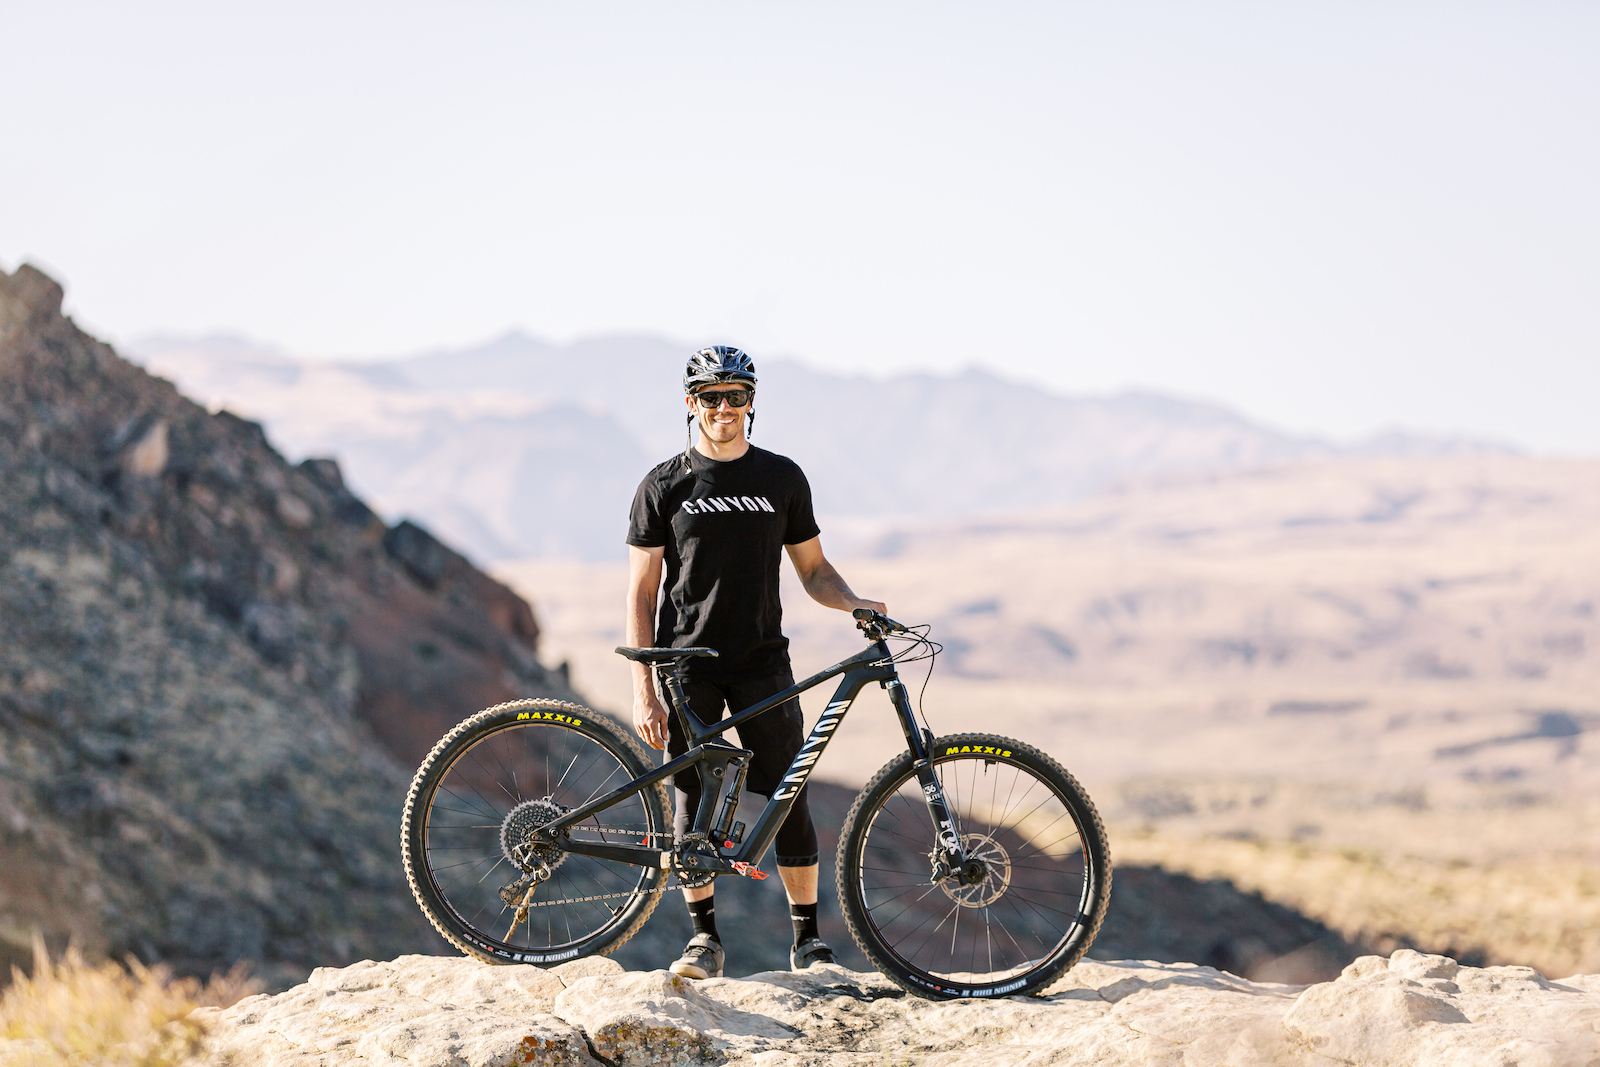 Braydon Bringhurst AKA BikerBrayd rides his Canyon Strive a bit differently from the average Joe.